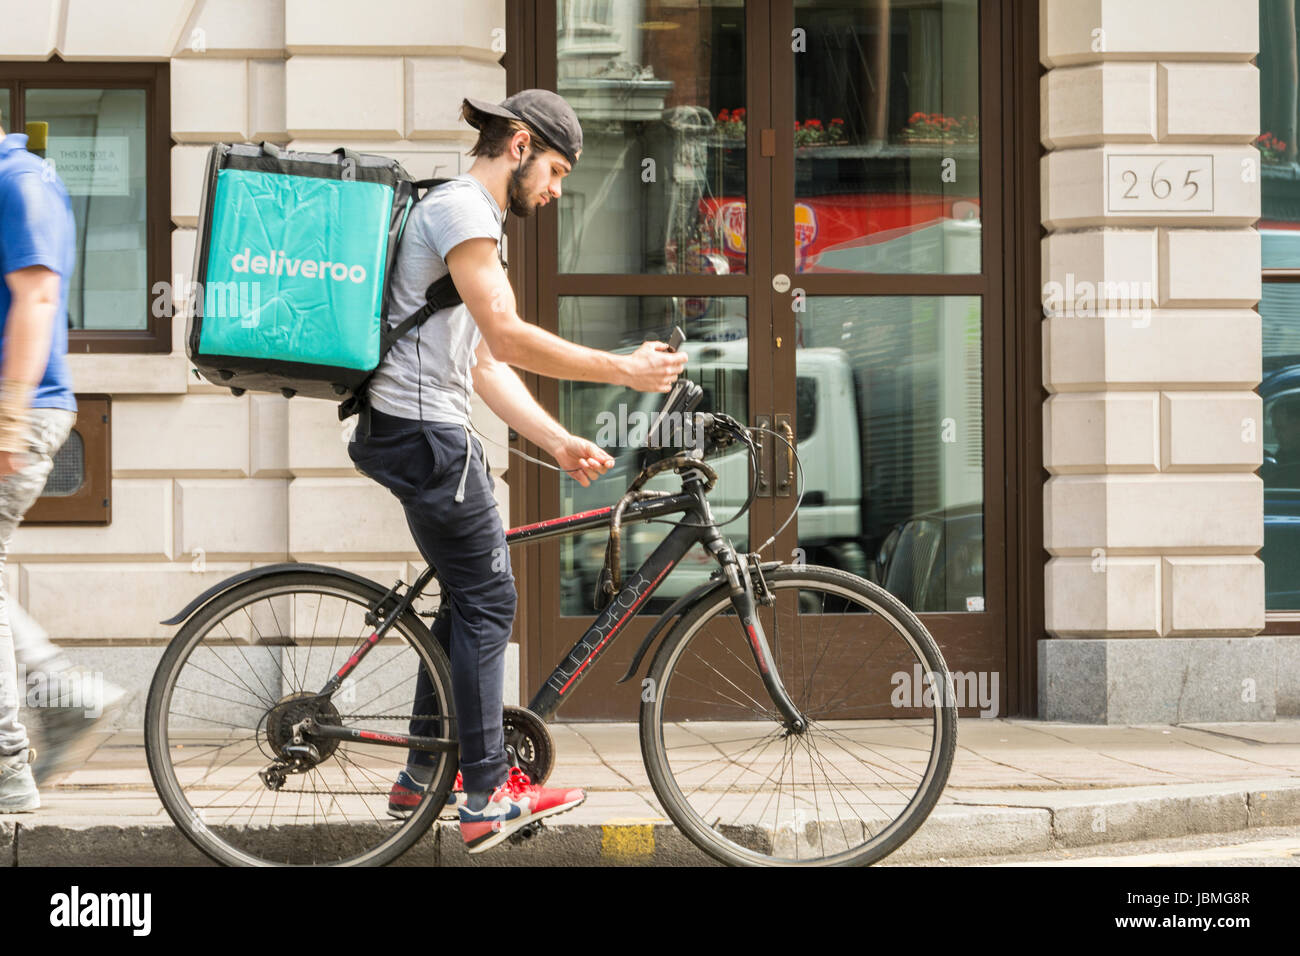 A Deliveroo cyclist picking-up his next job on his mobile phone in central London, UK - Stock Image